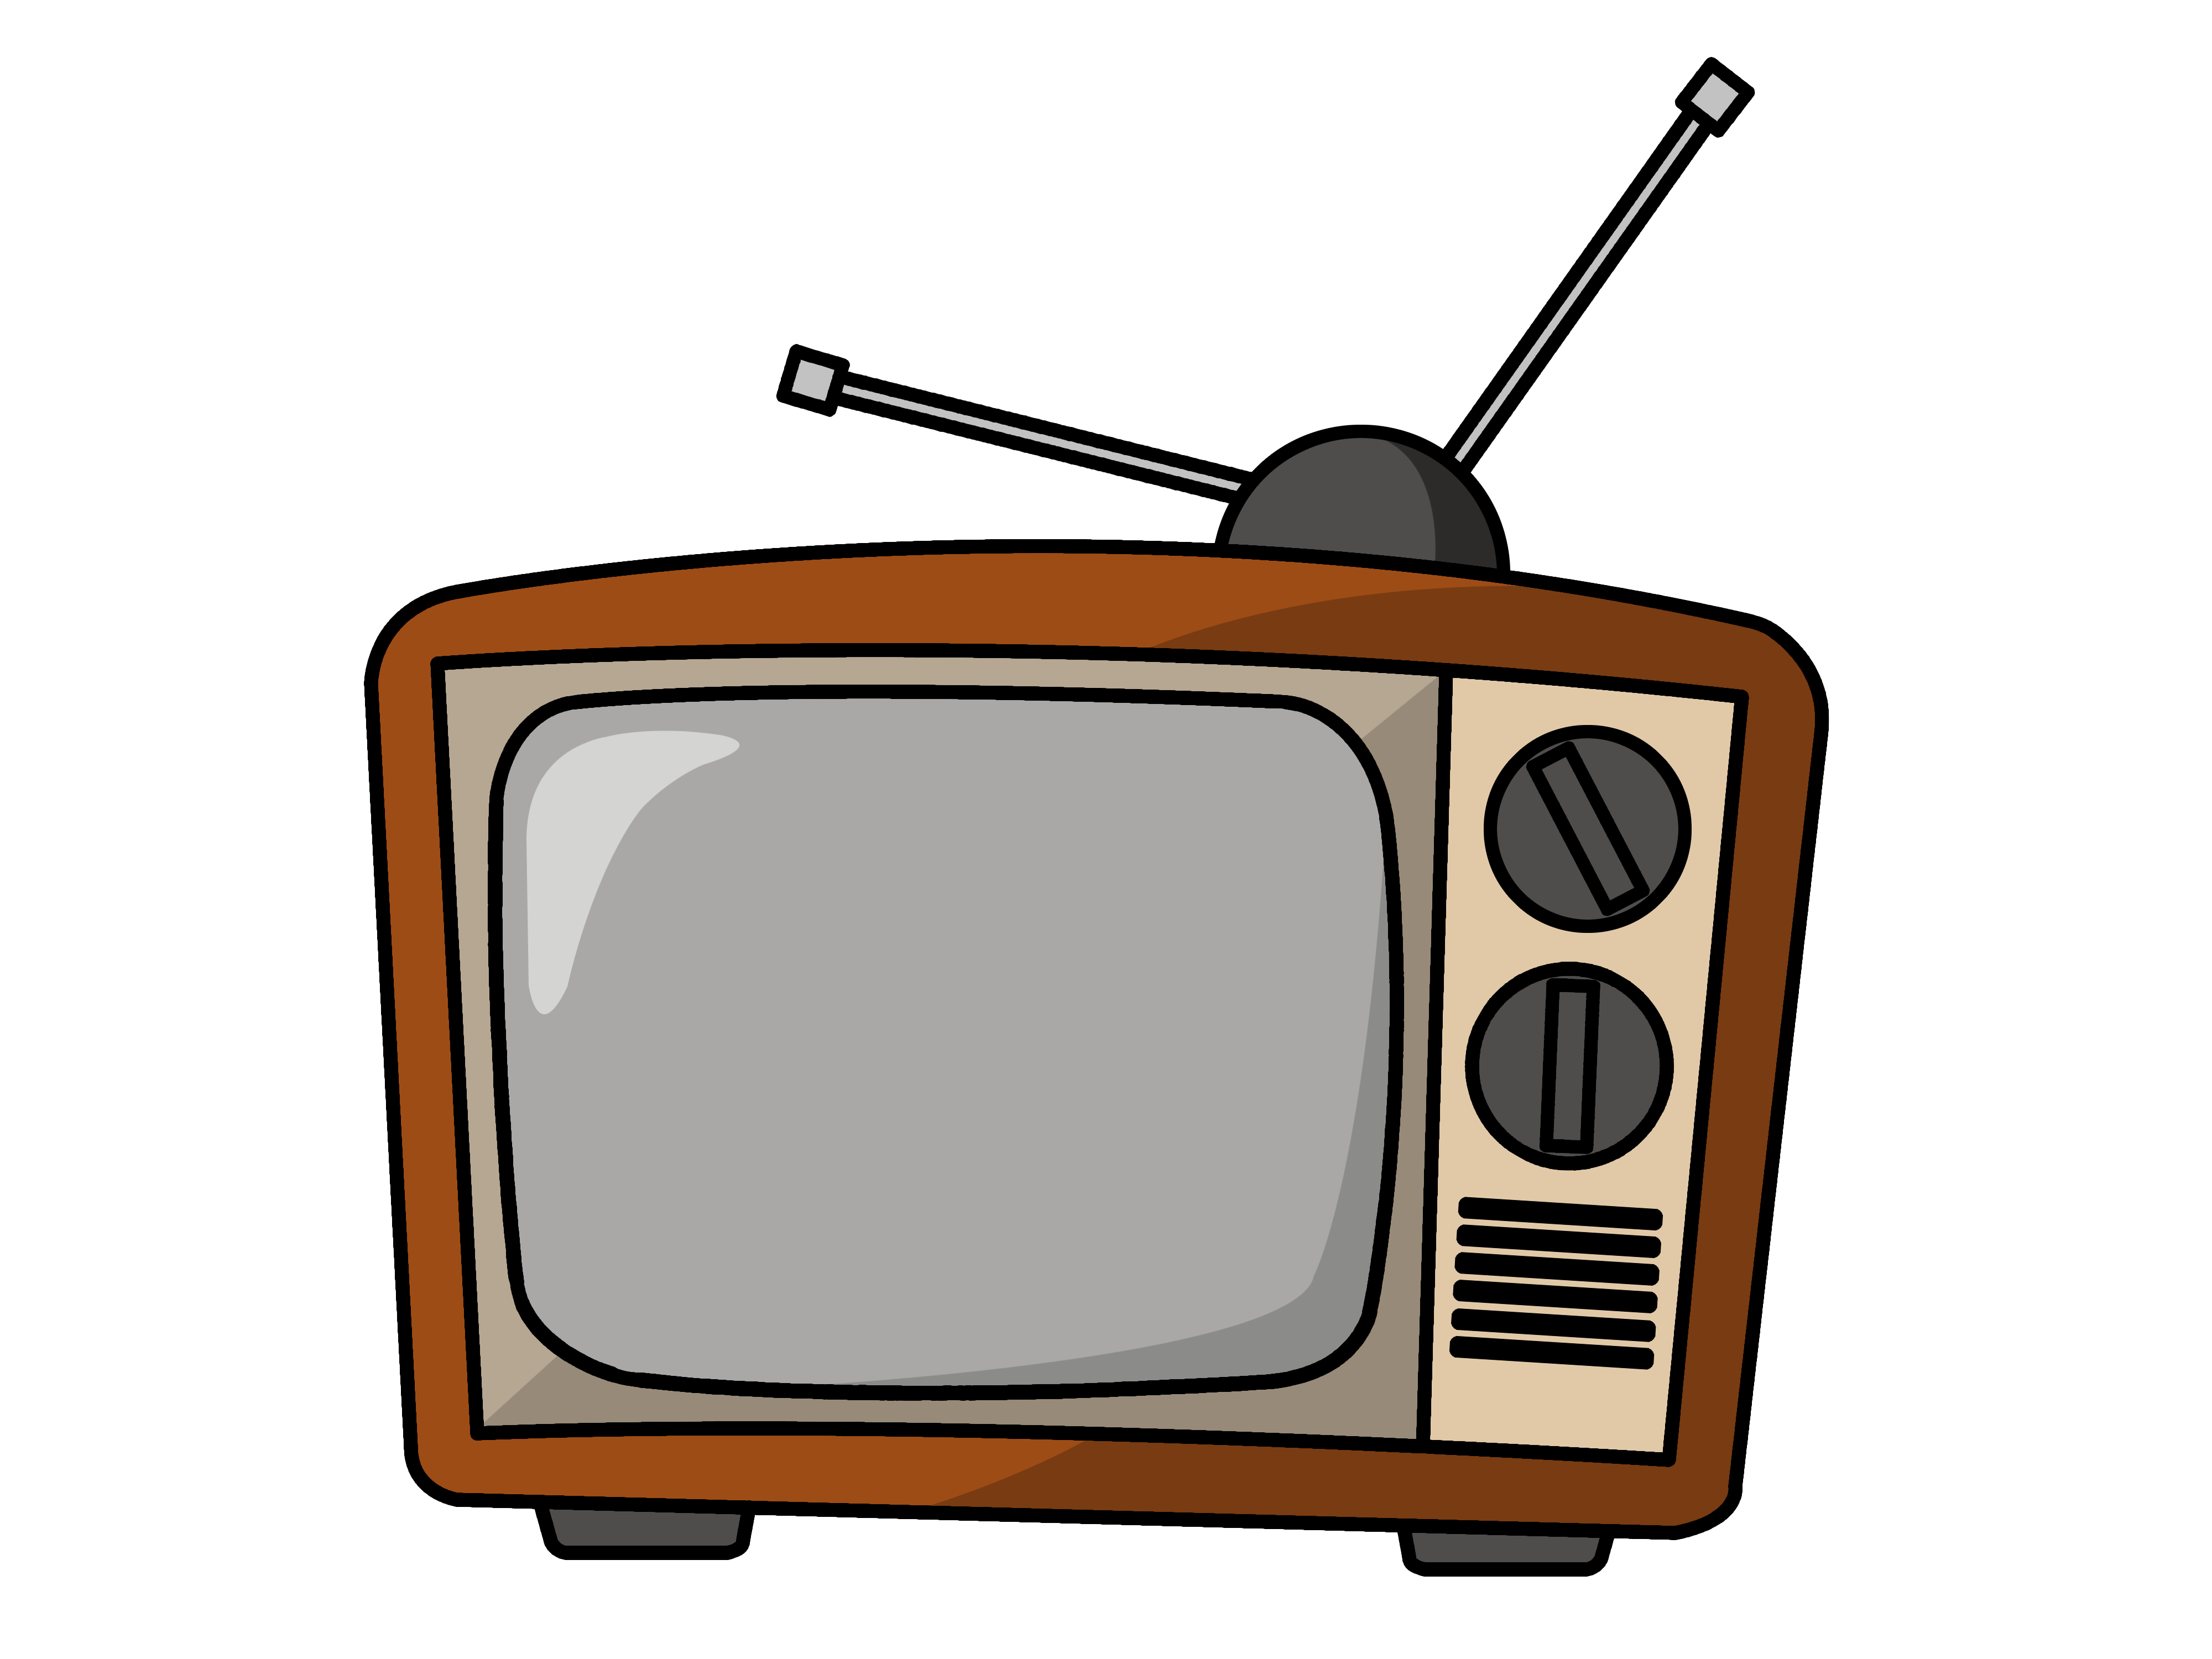 clipart Television drawing old school. Tv transparent png pictures.